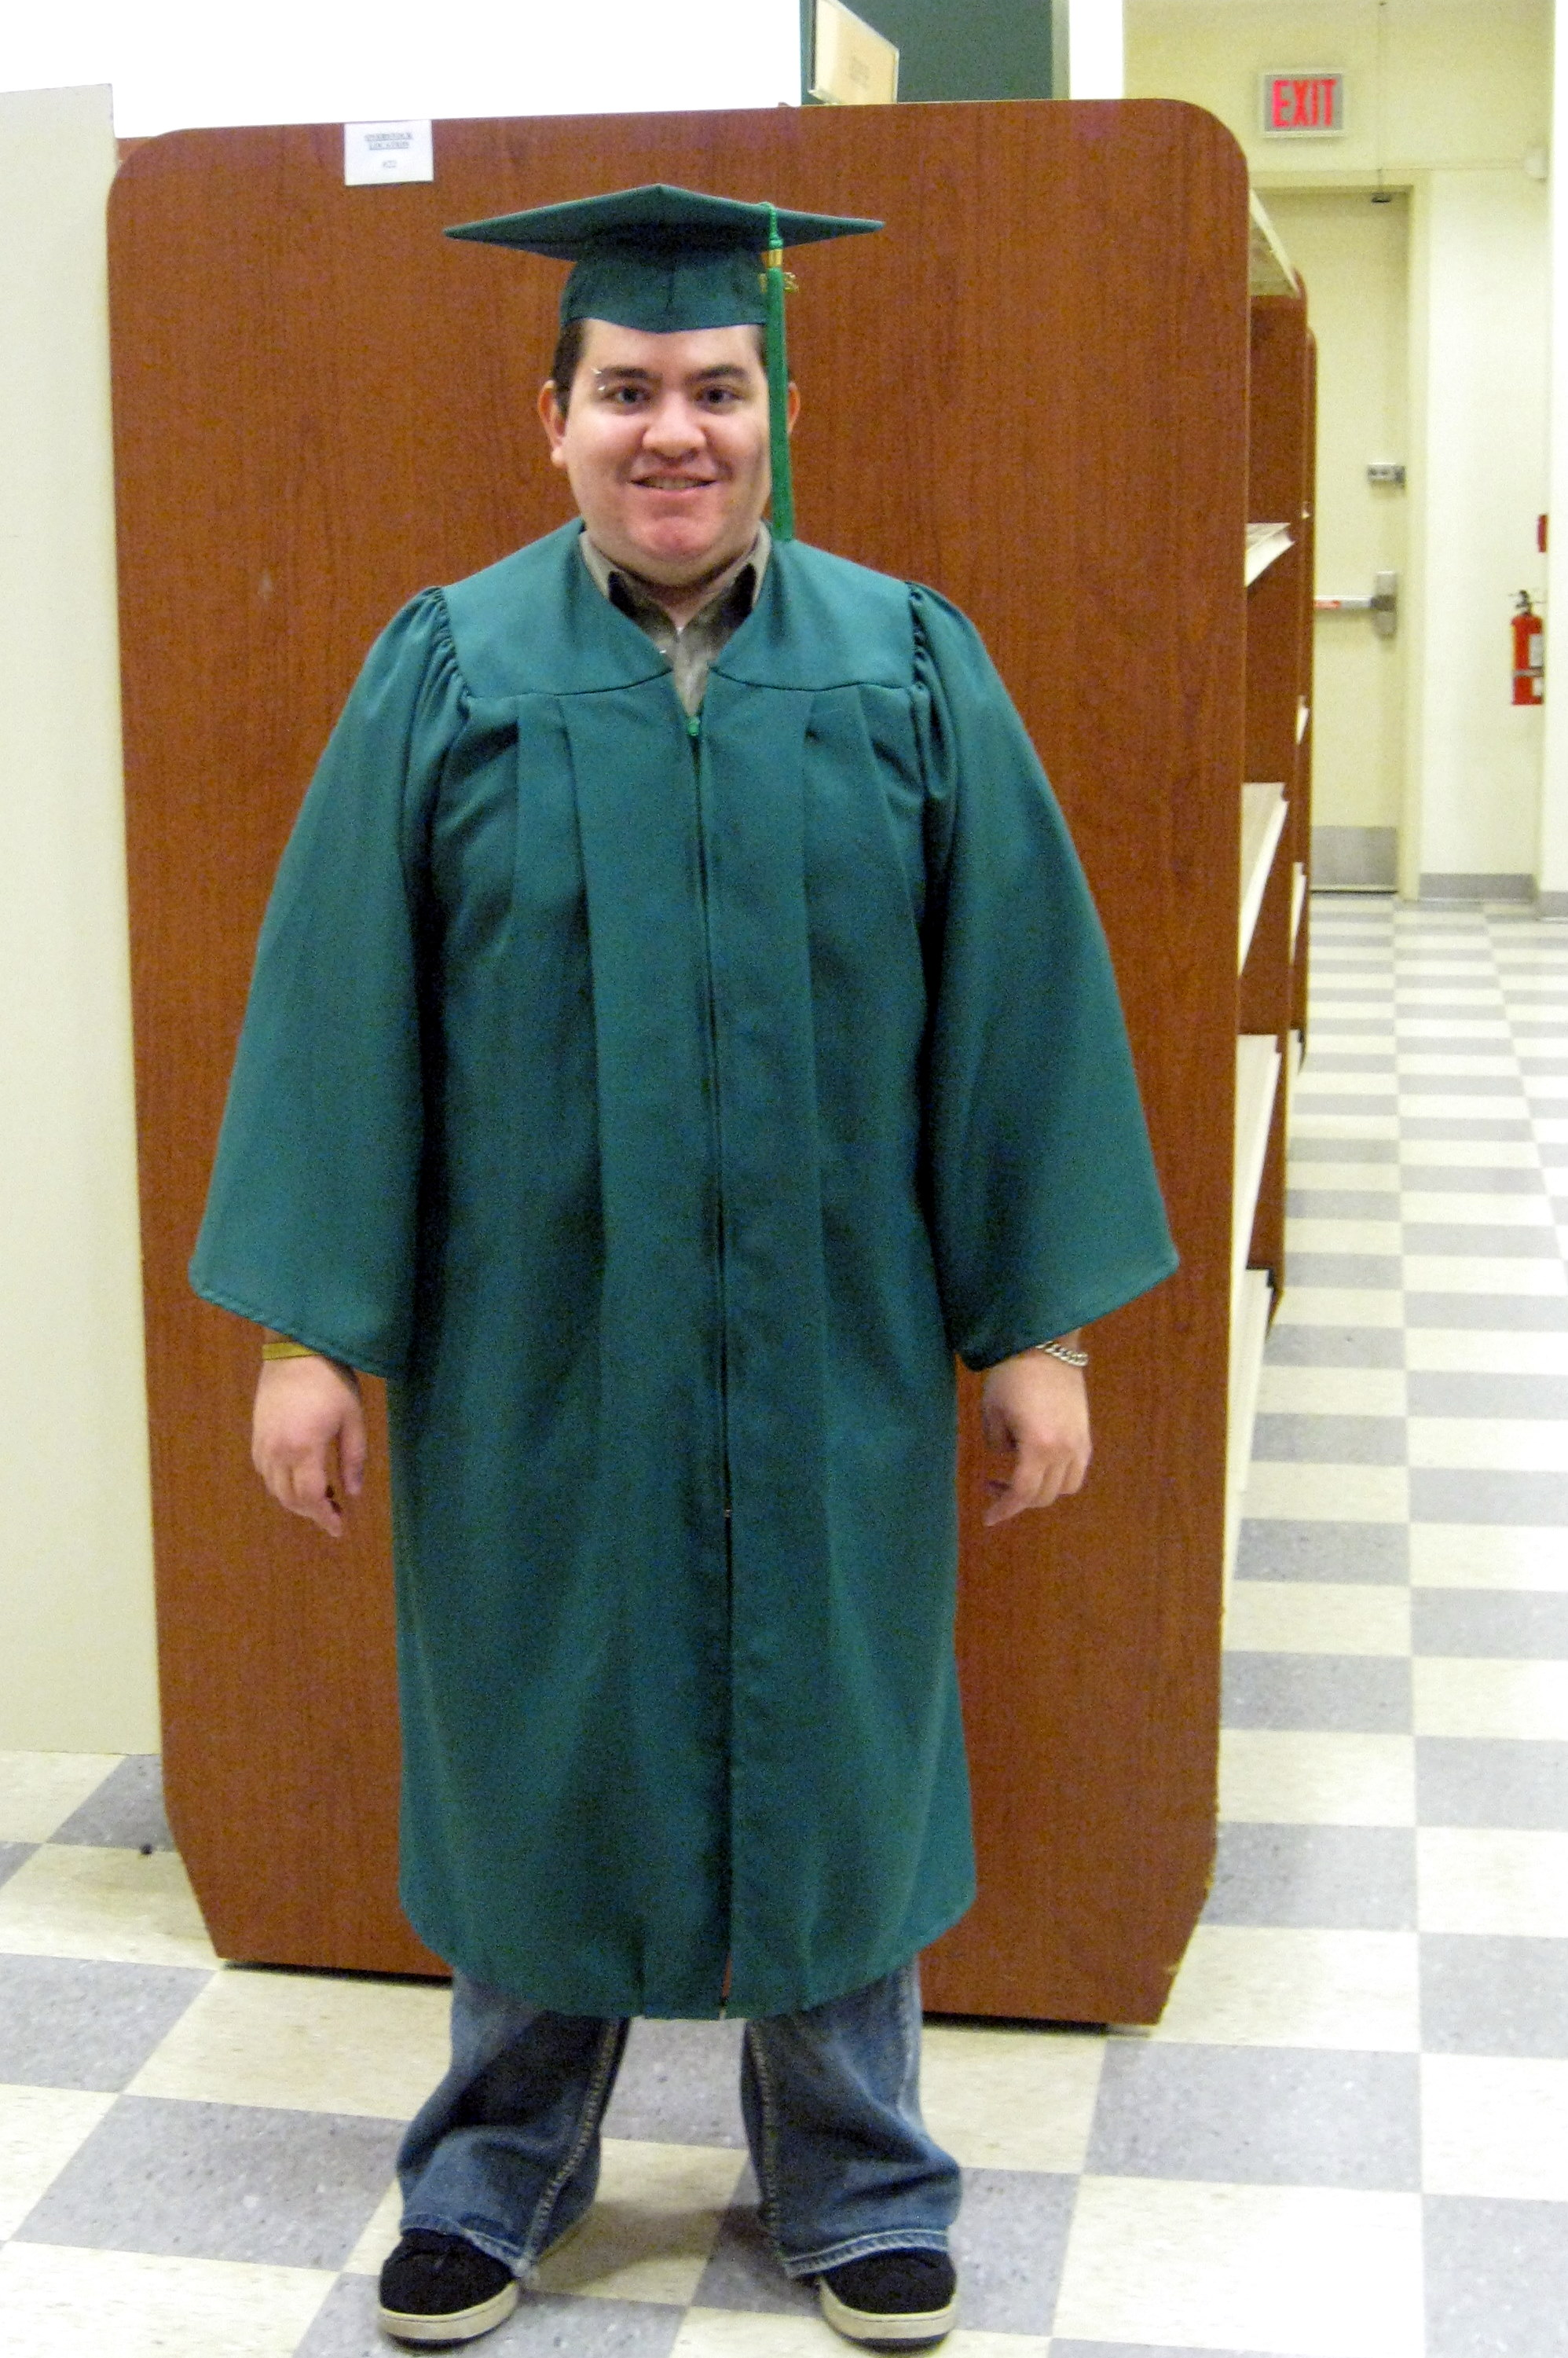 Green' graduation gowns to be used this year | Connect2Mason